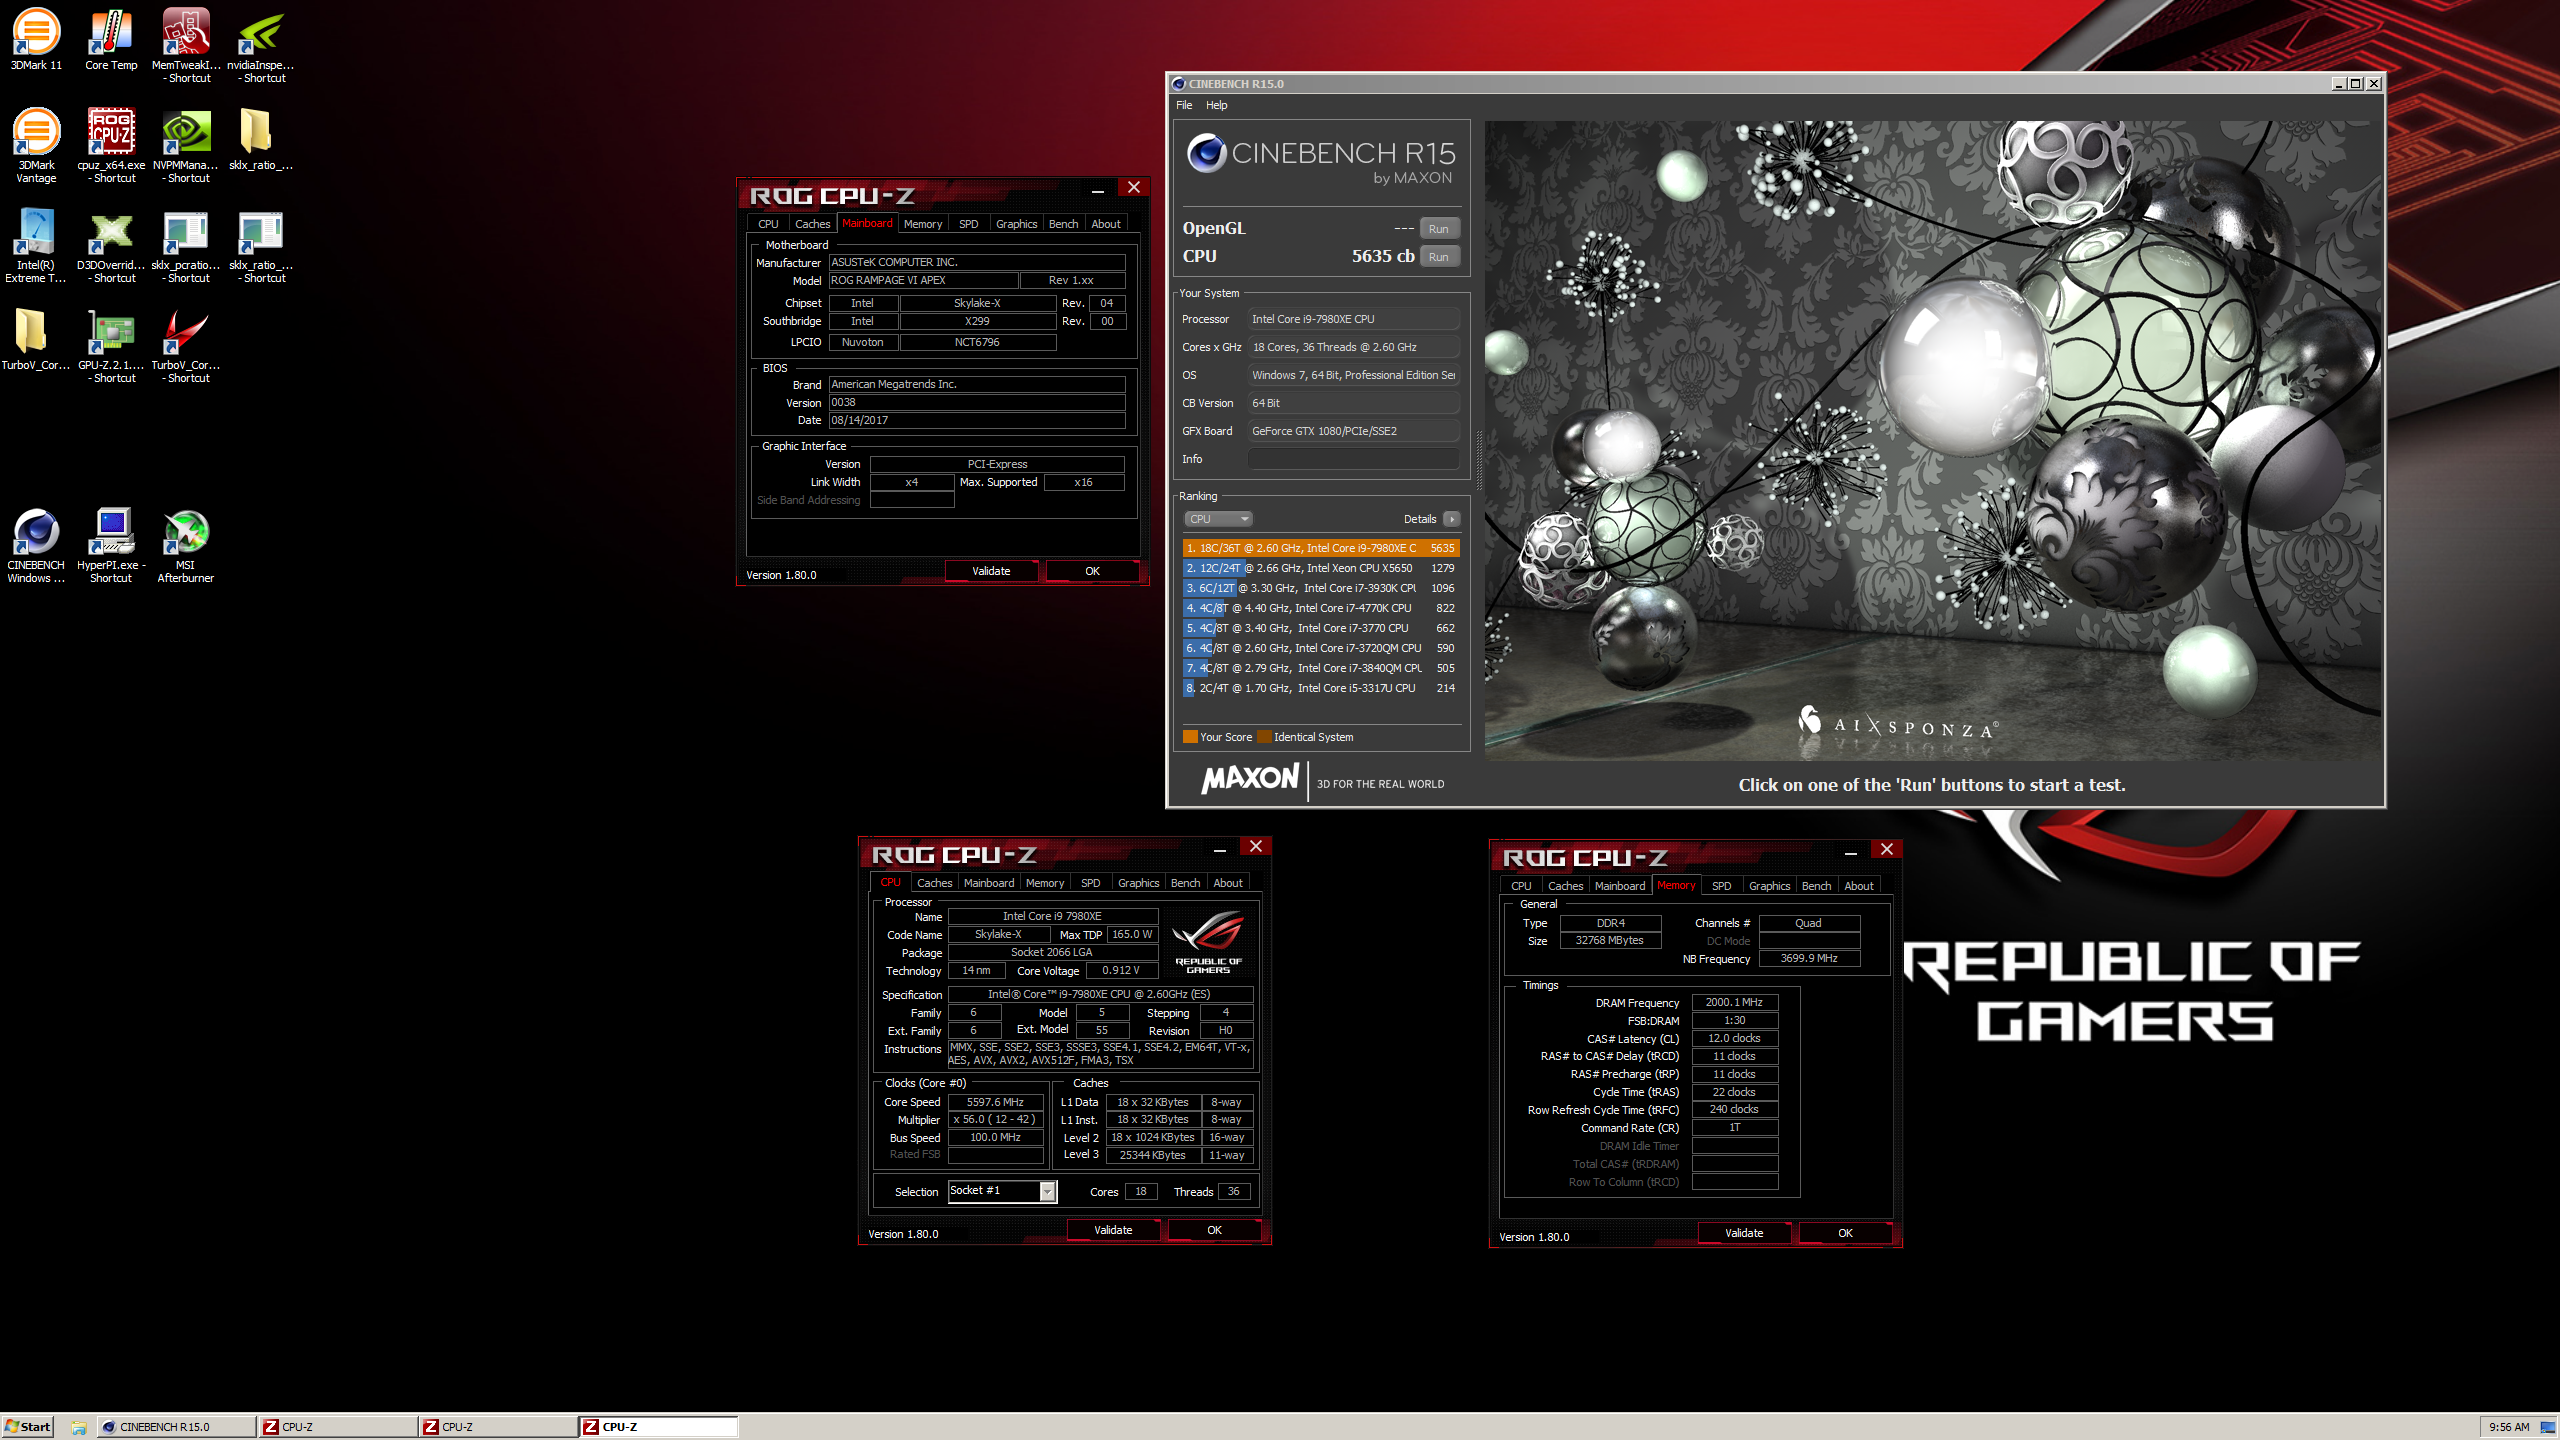 Cinebench R15 - 5635 by der8auer